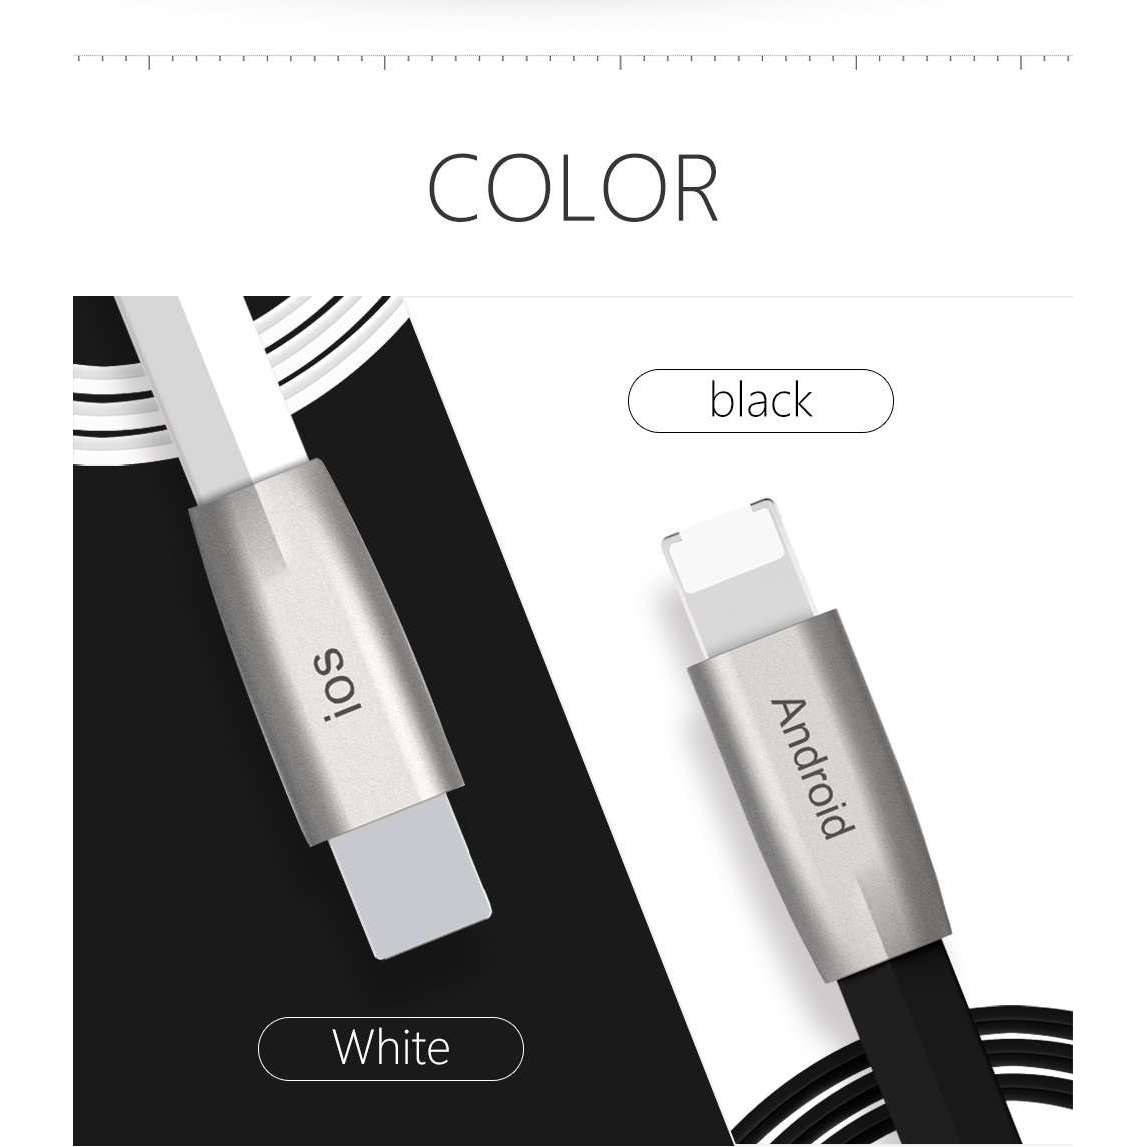 Mcdodo Premium Apple and Android cable | Same Connector | 1.0 m